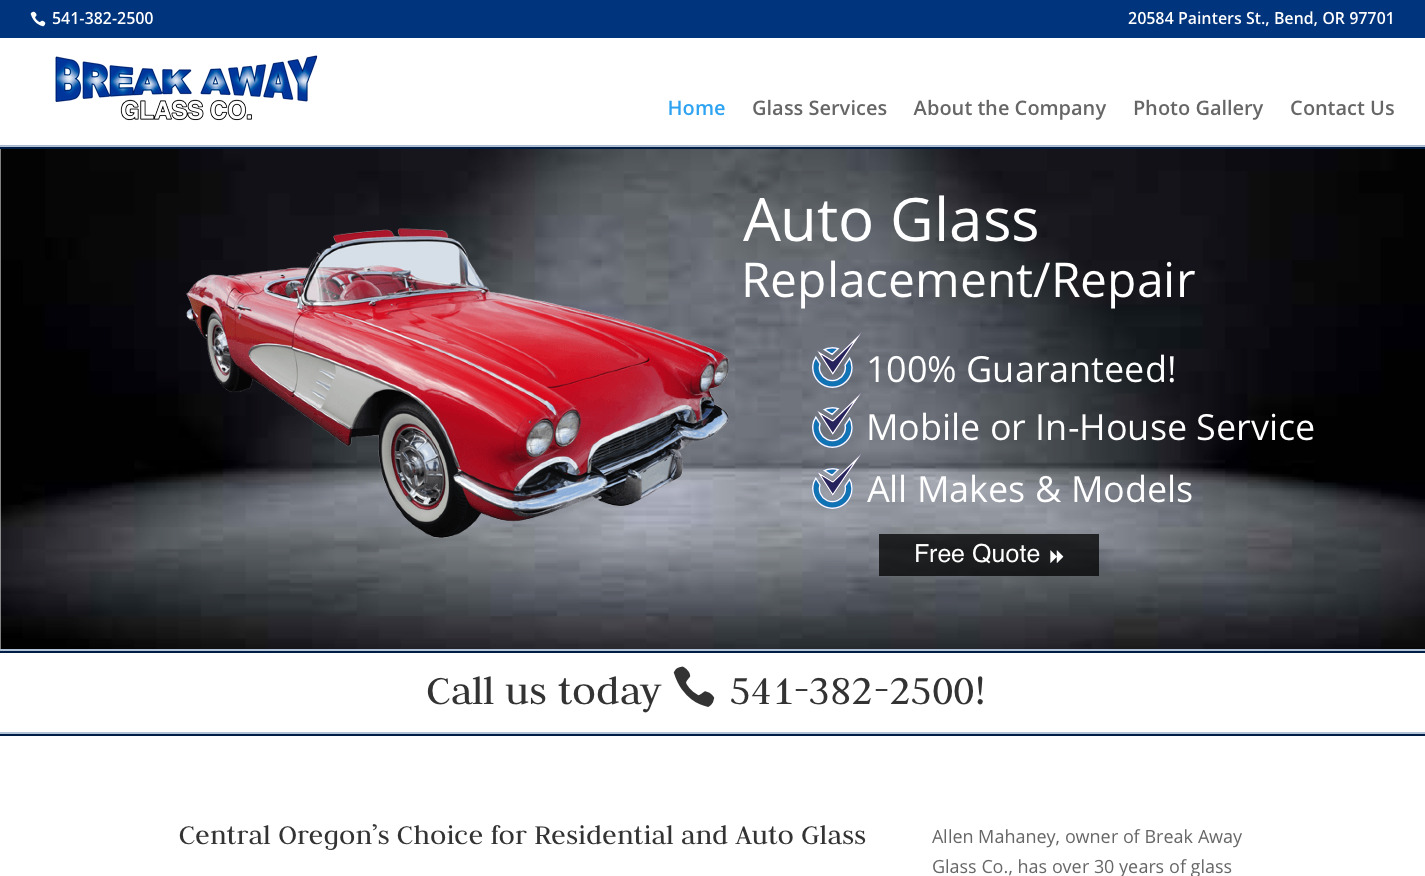 Auto Glass Quote Auto Glass In Bend Or  Glass Repair & Windshields  Break Away